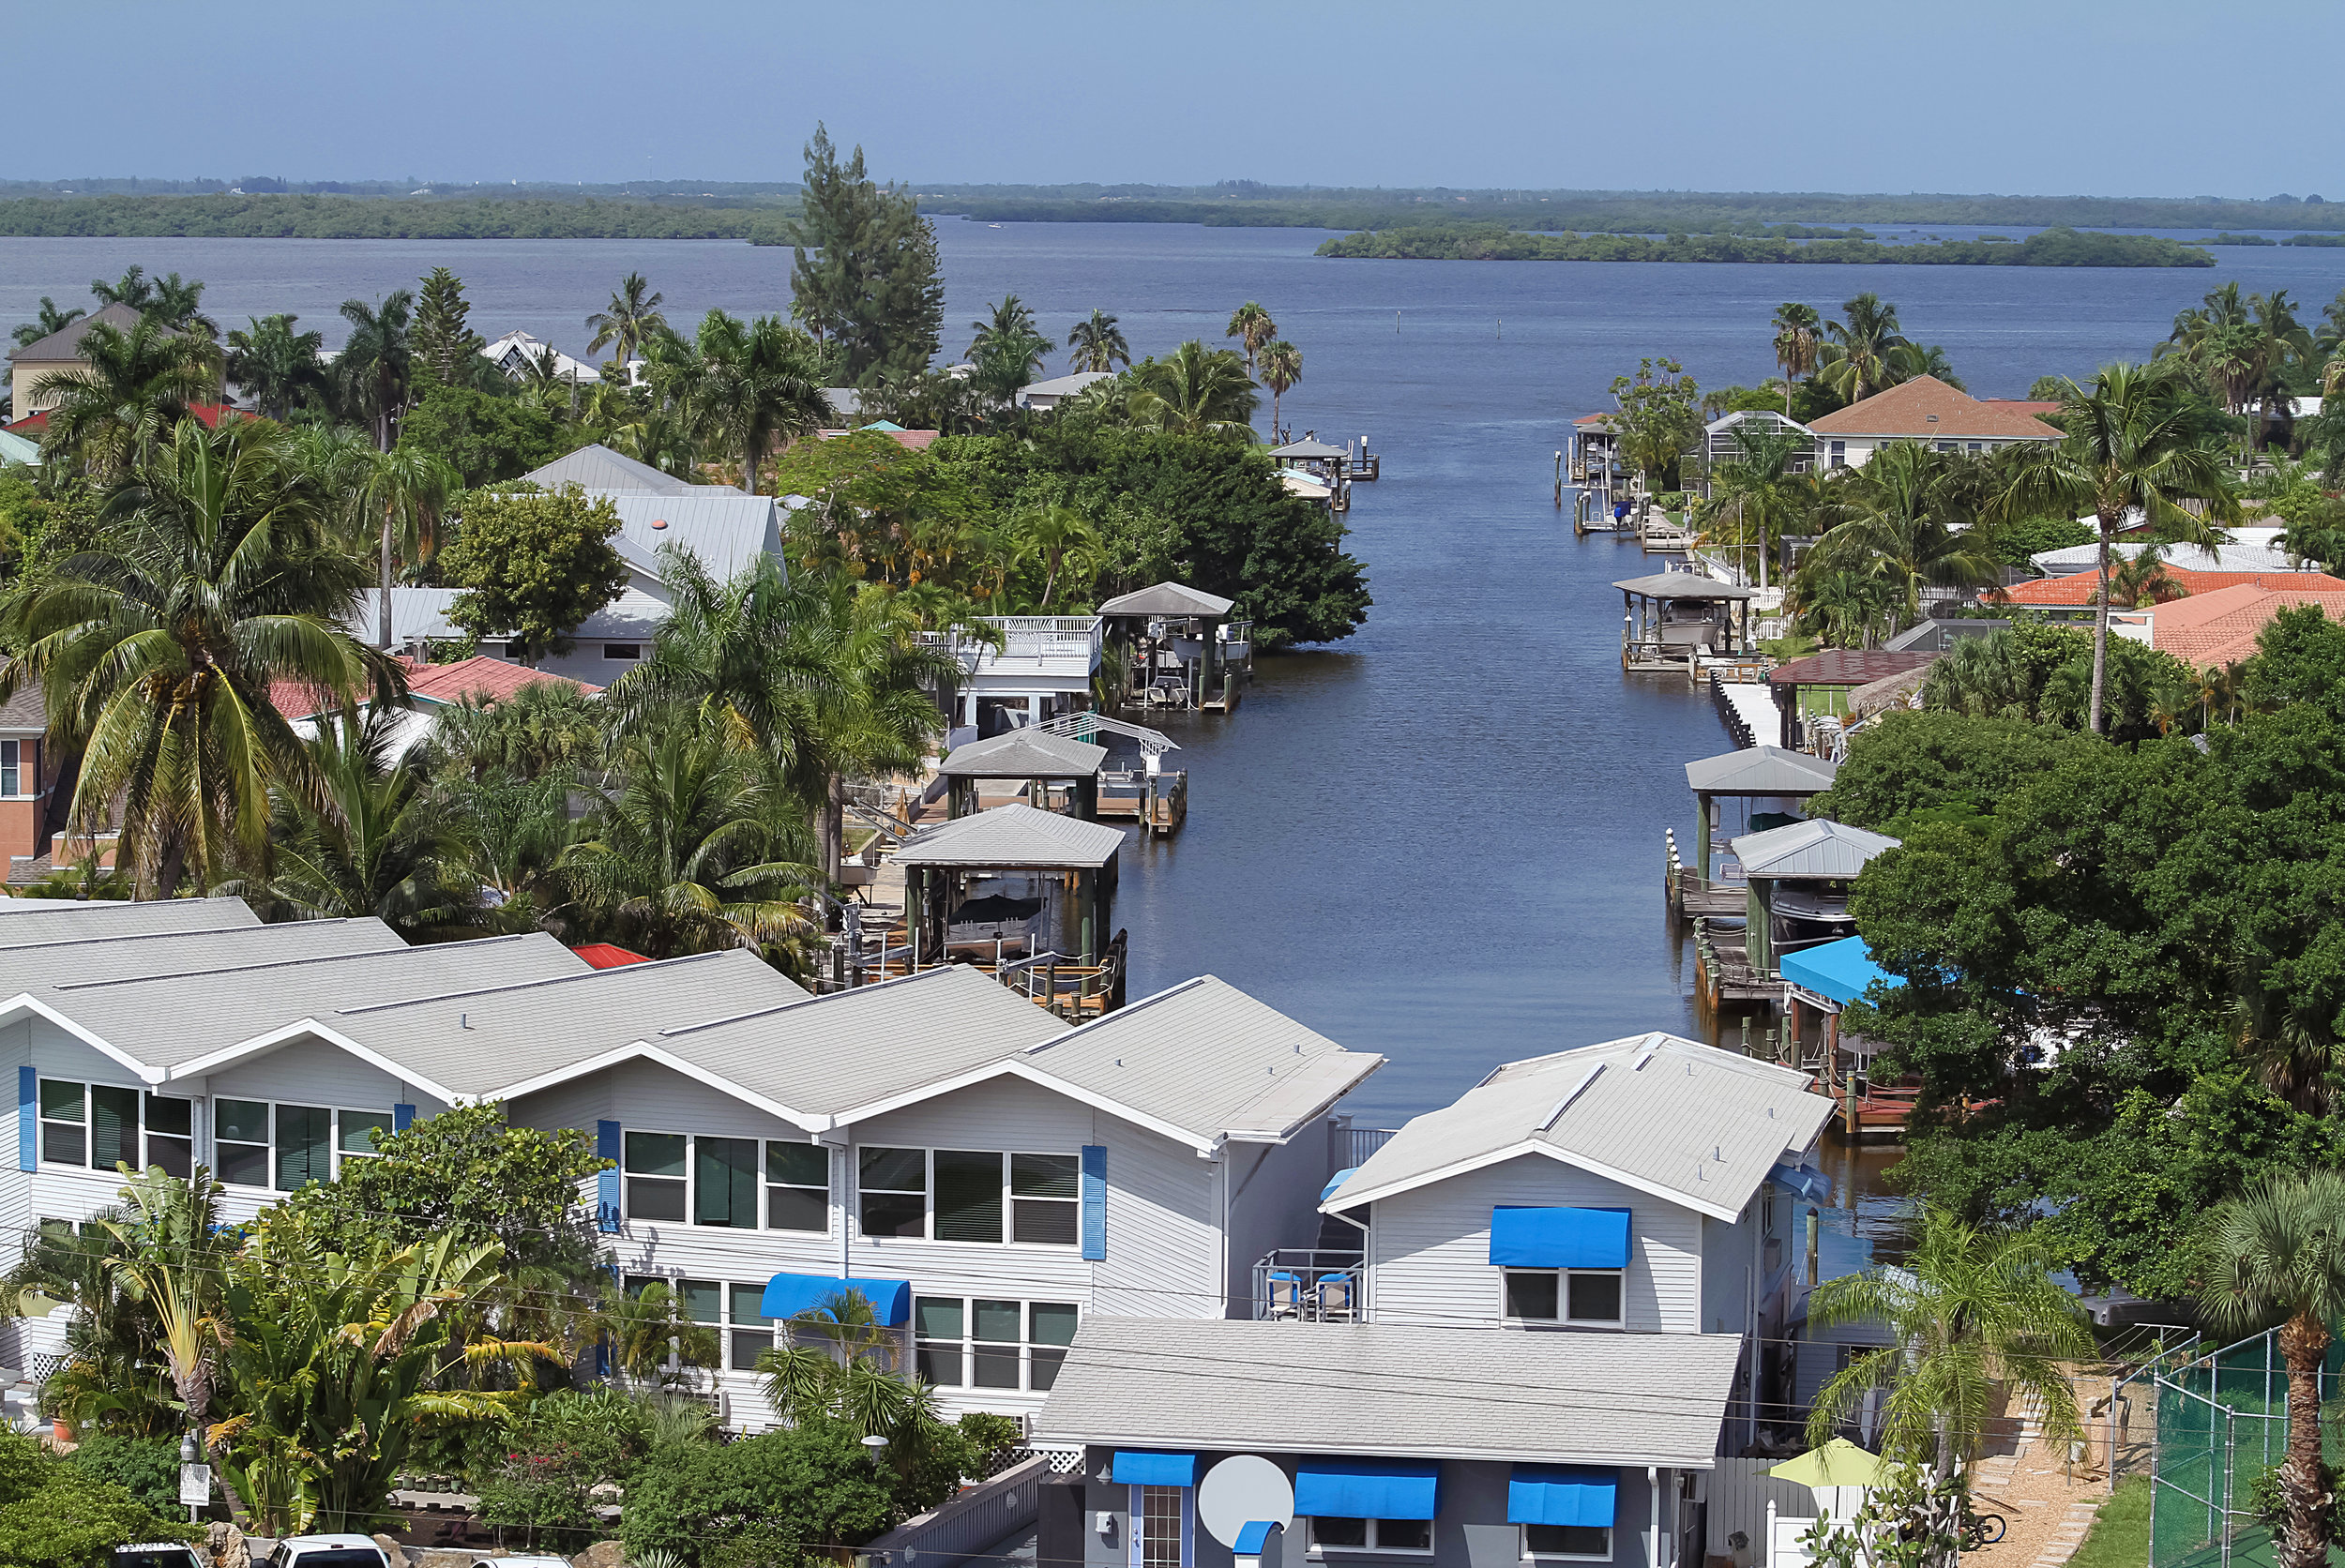 Joe-the-Home-Pro-Fort-Myers-Florida-Overview-Homes-photo